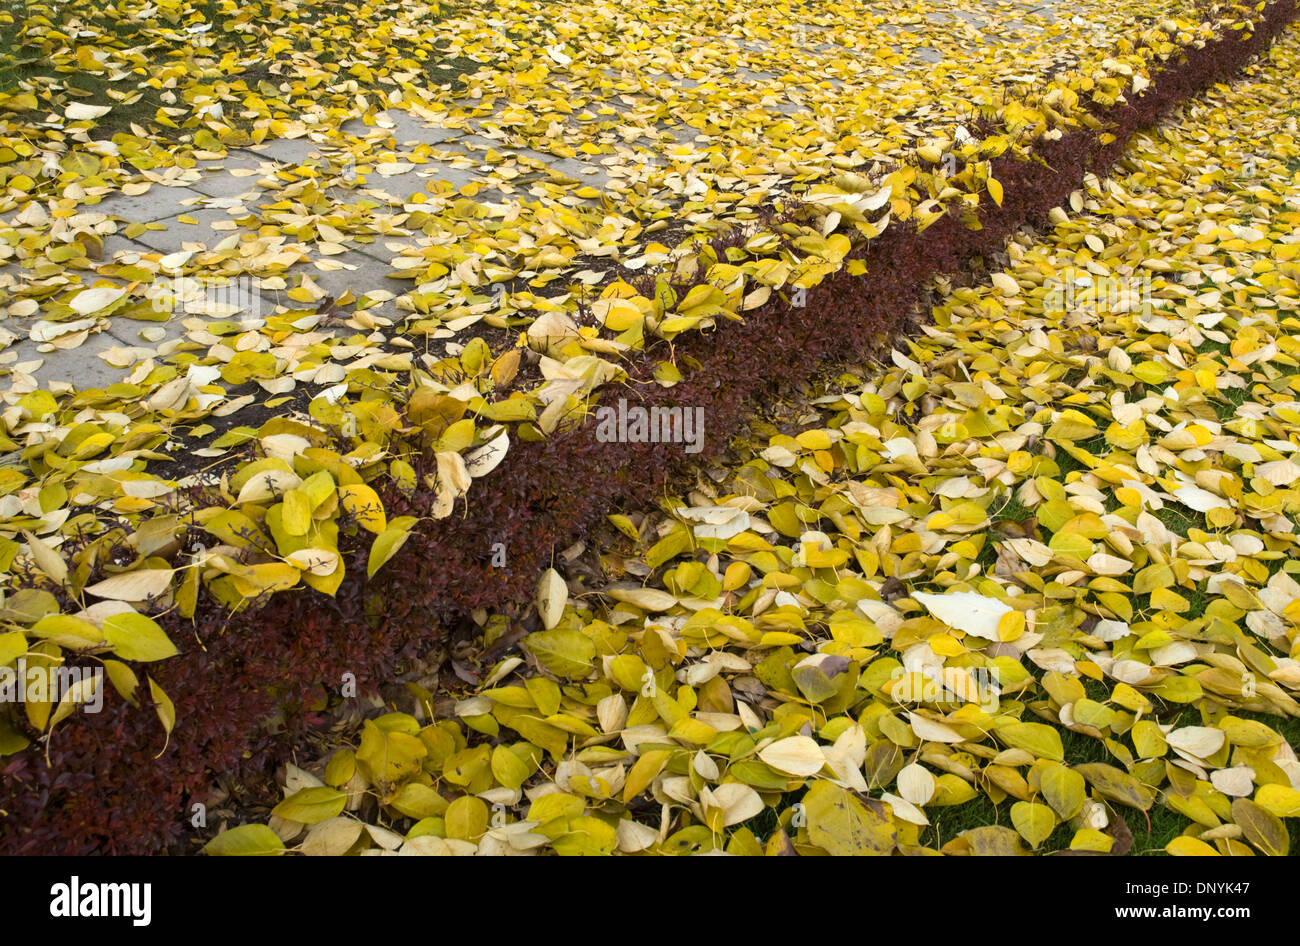 Fallen birch leaves at Auschwitz, Poland. - Stock Image